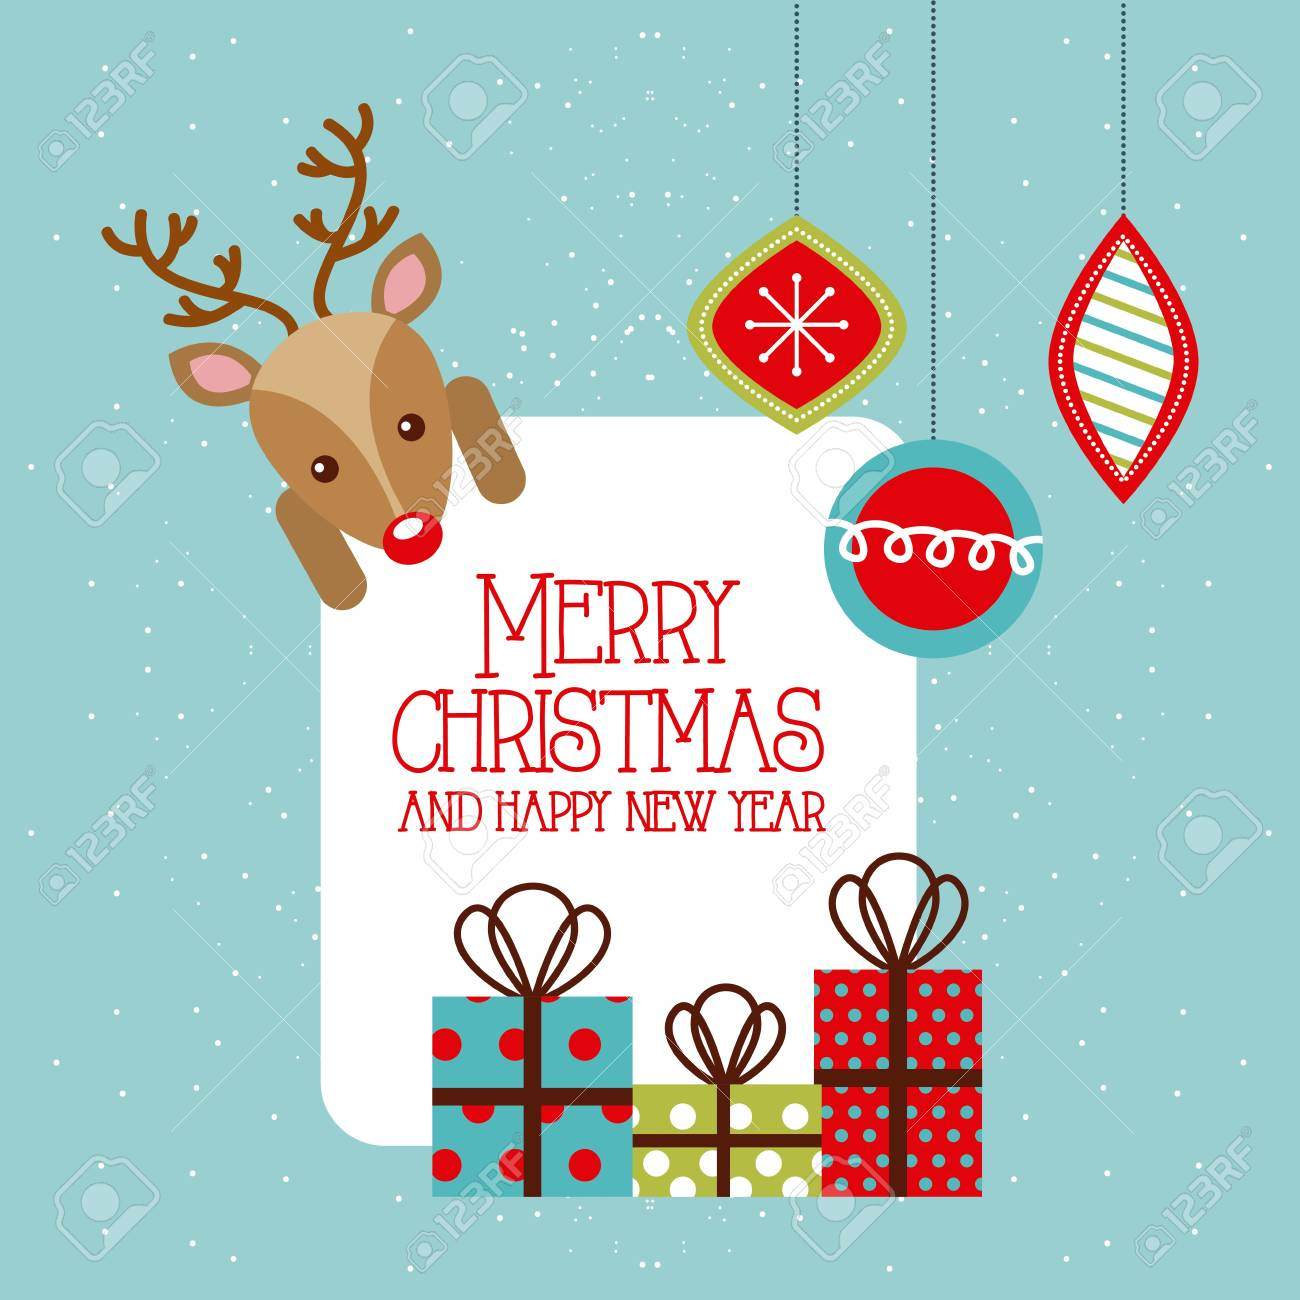 merry christmas and happy new year deer gifts hanging balls vector illustration - 86857247